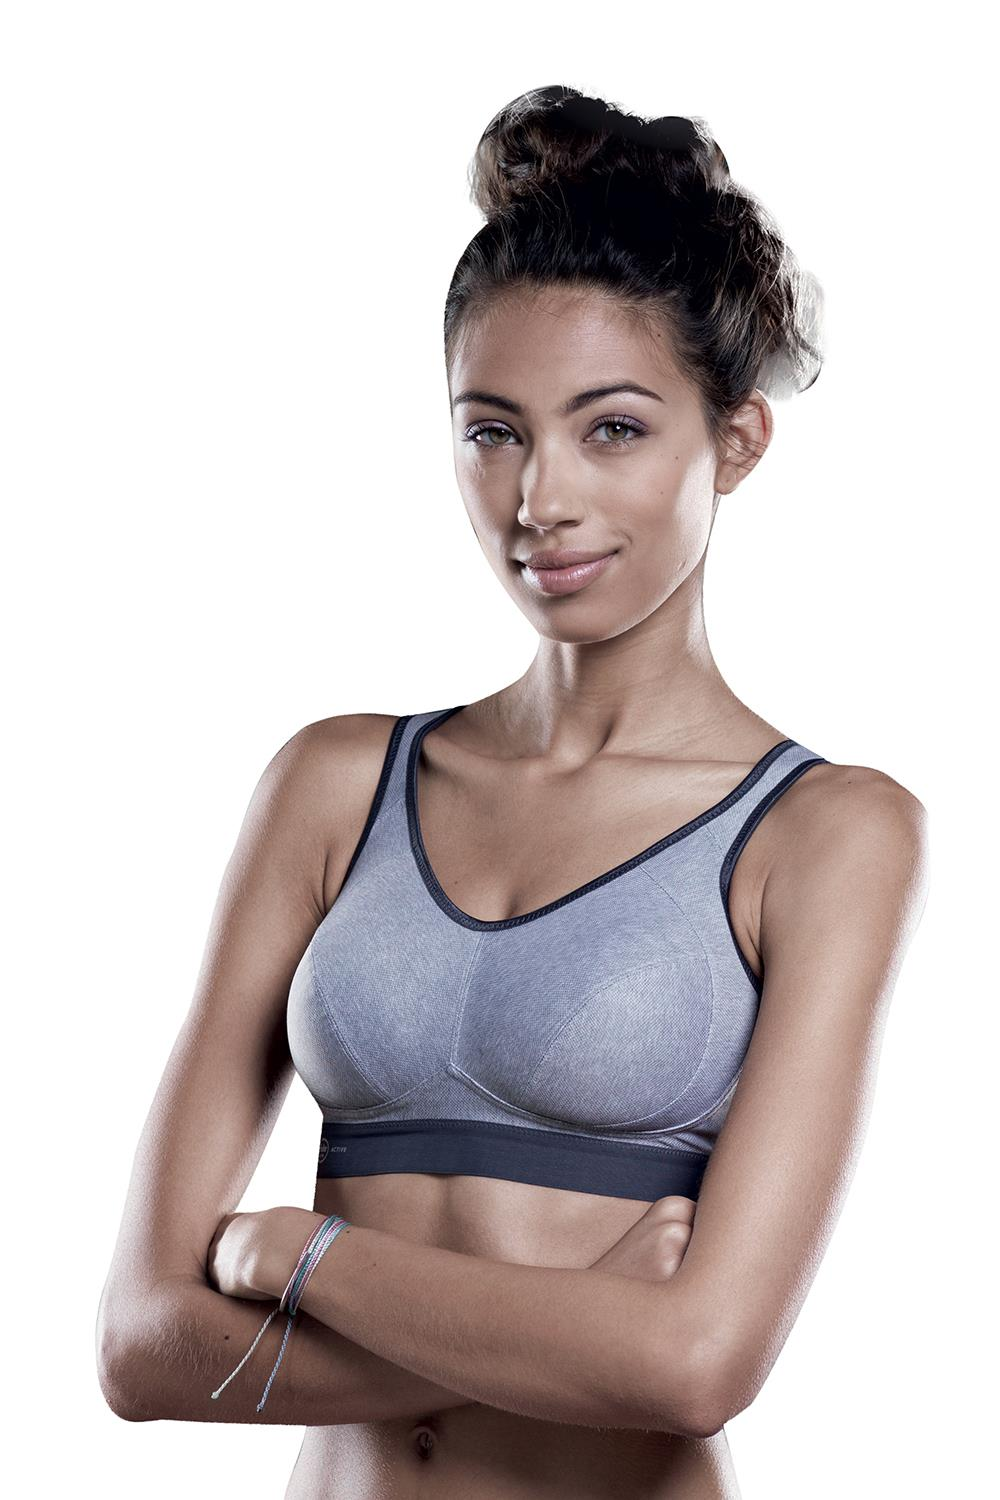 6c6e8bfd6c5ee Anita Maximum Support - Extreme Control Sports Bra 5527 - My Top Drawer